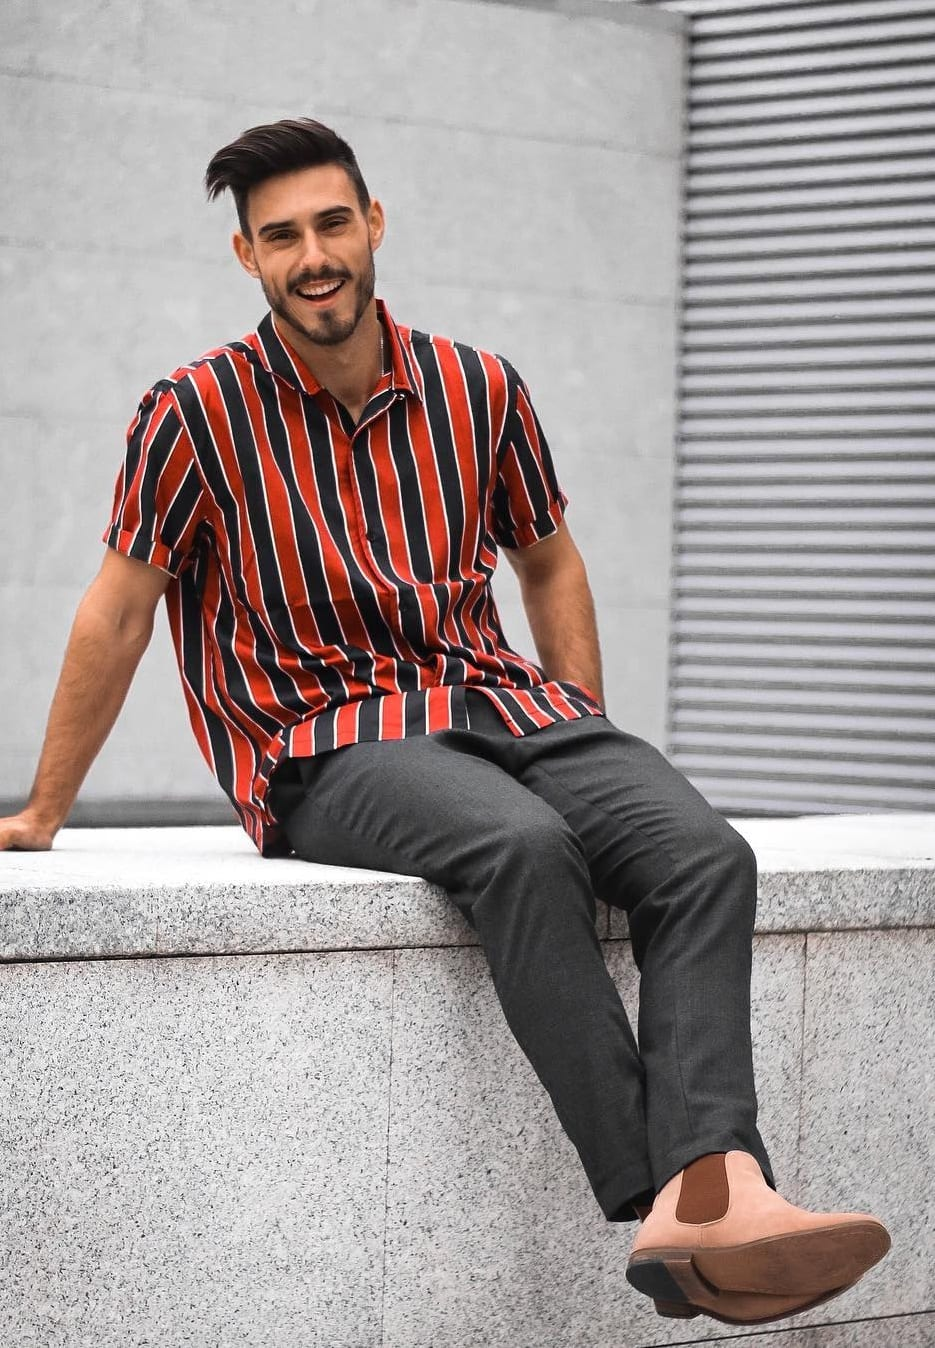 Red and Black Vertical Striped shirt Outfit